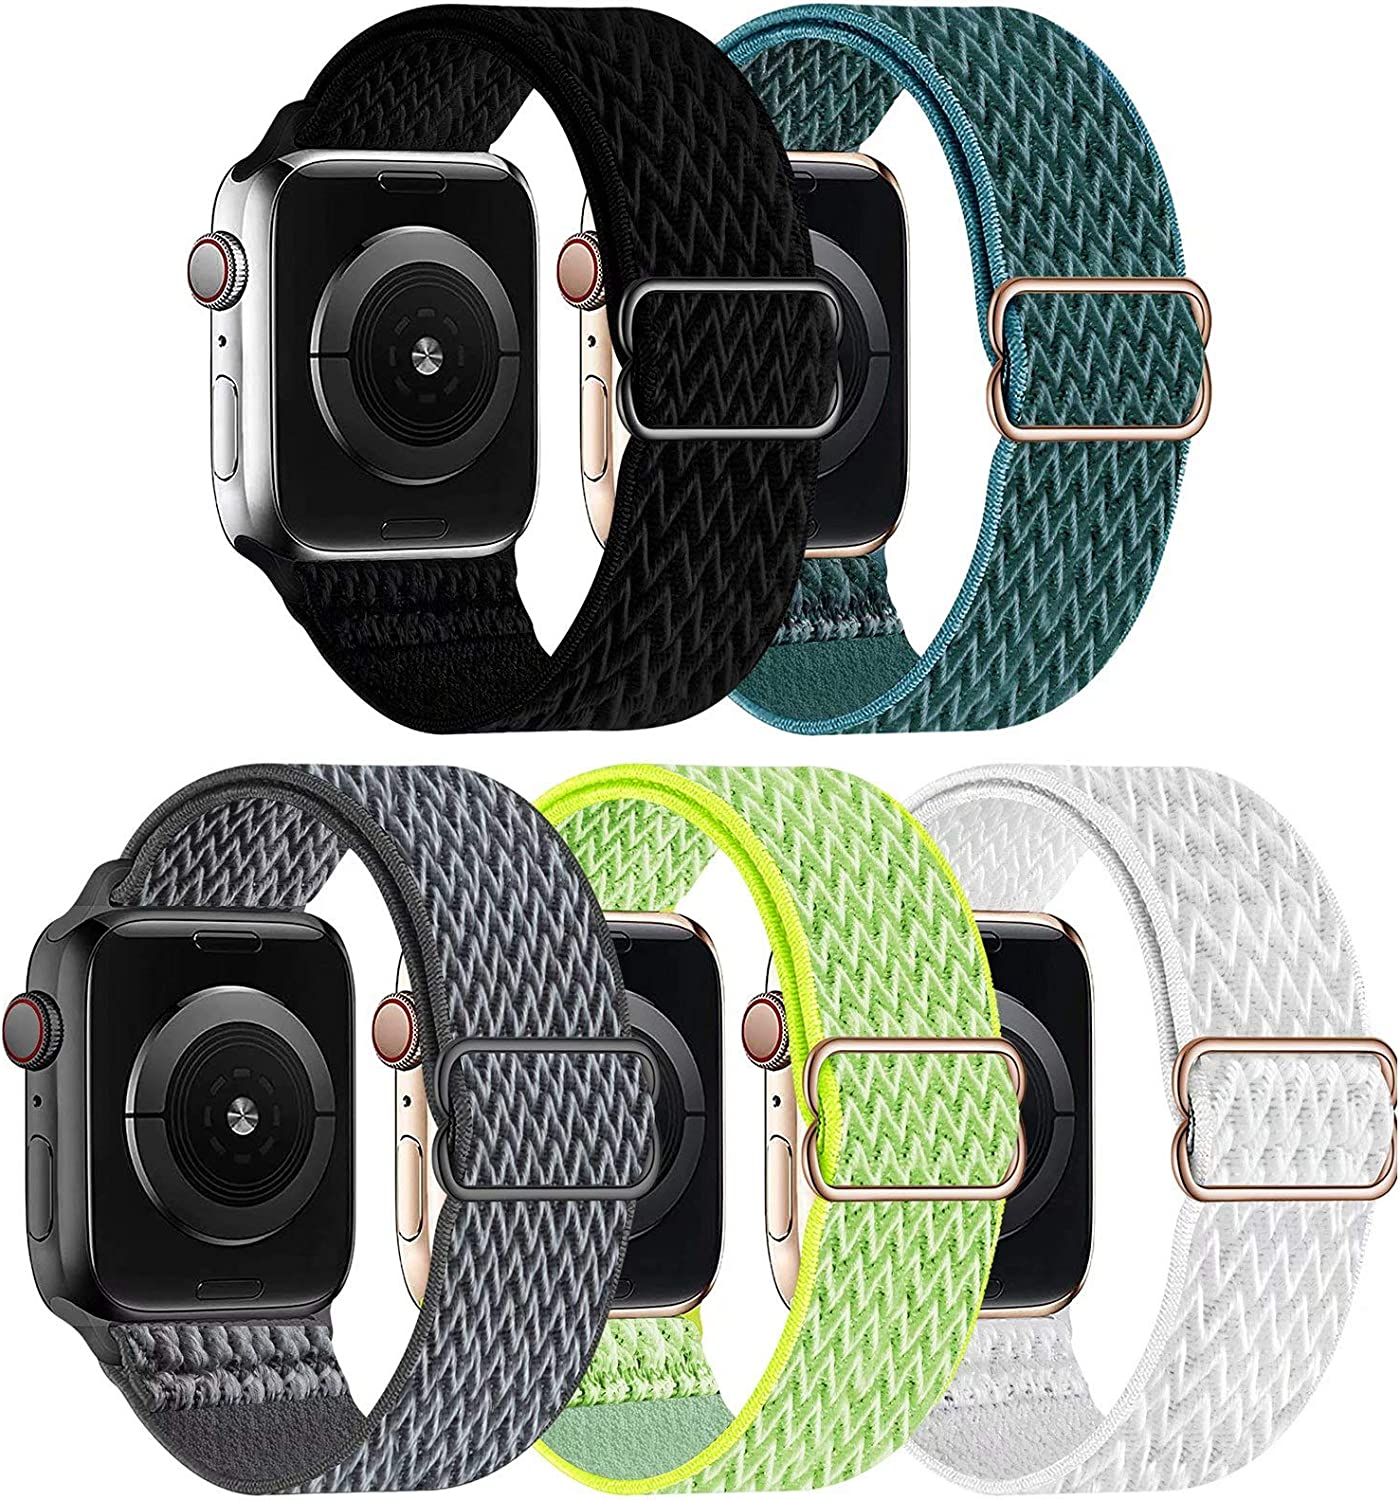 GBPOOT 5 Packs Nylon Stretch Band Compatible with Apple Watch Bands,Adjustable Soft Sport Breathable Loop for Iwatch Series 6/5/4/3/2/1/SE,Black/Pine Green/Storm Gray/Flash Light/White,38/40mm